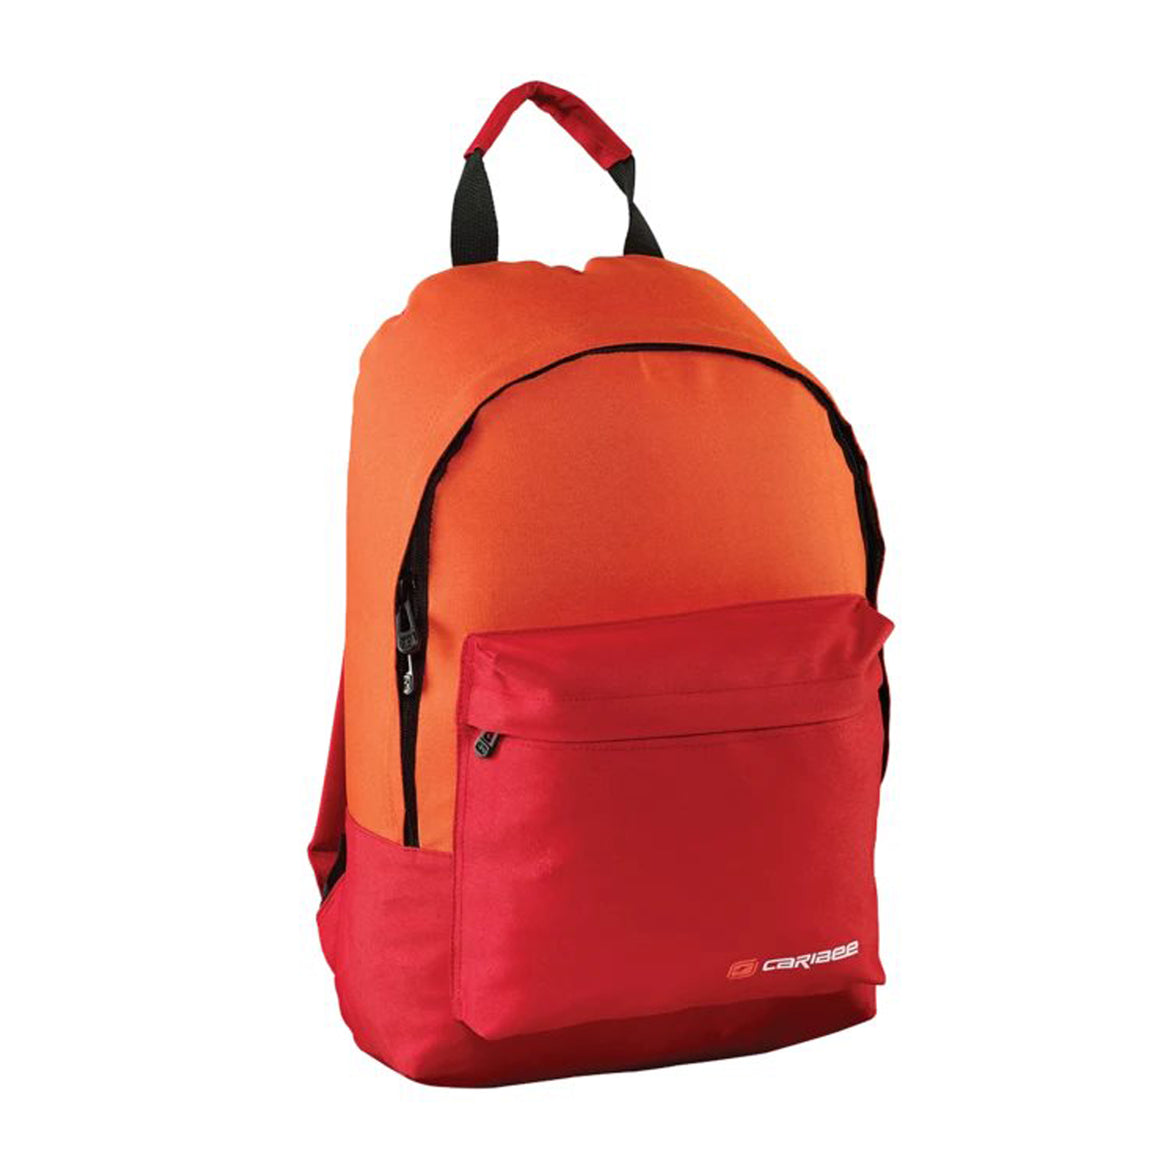 Campus Backpack in Red & Orange